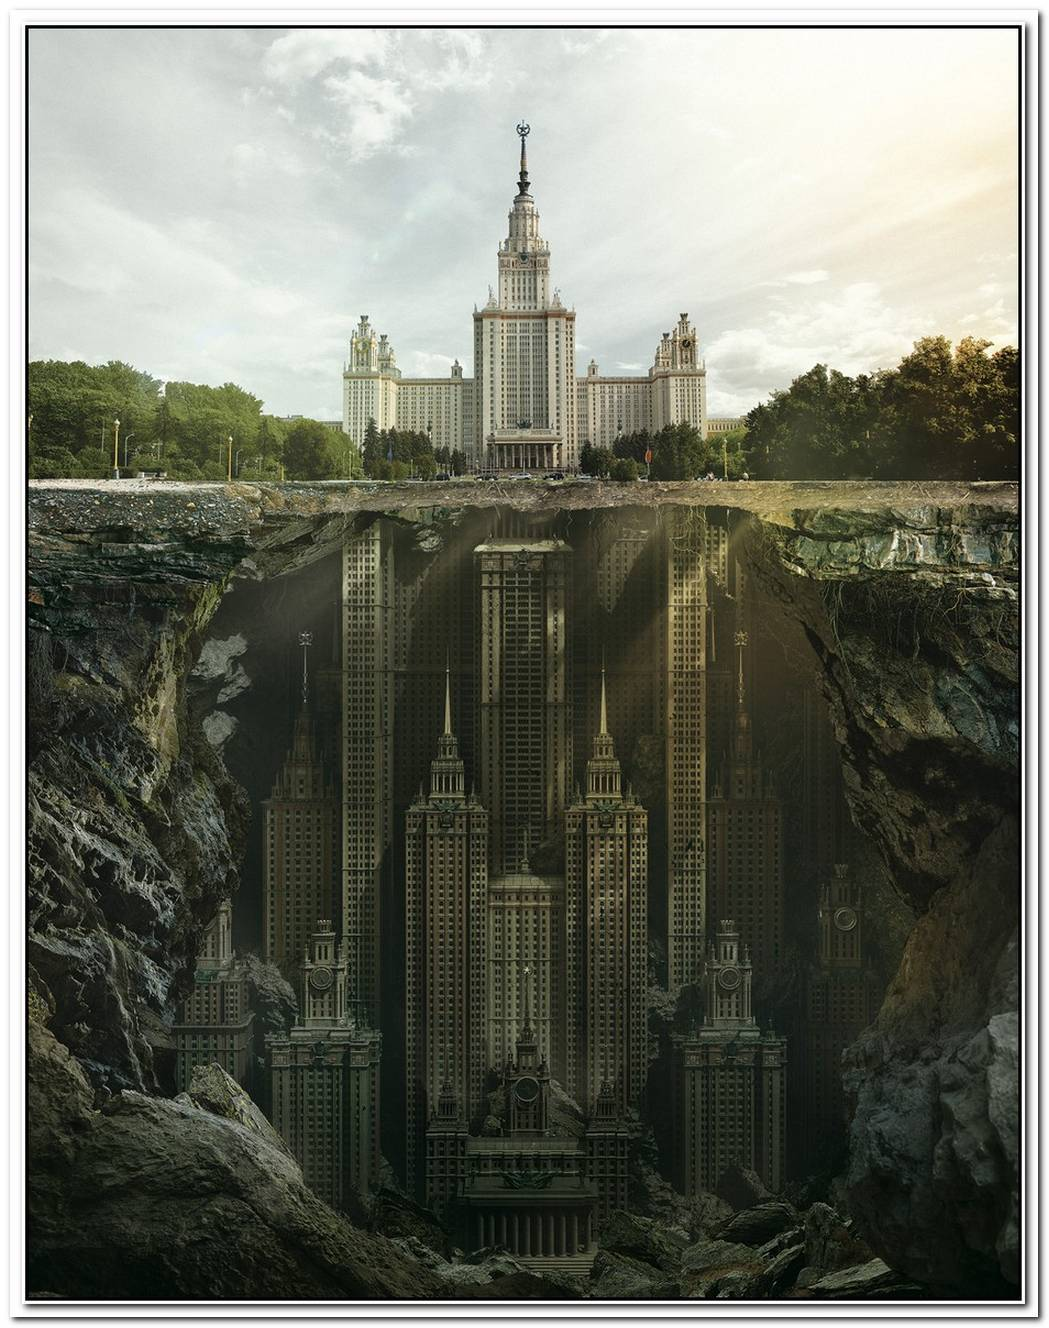 Fantastic Reimagination Of Iconic Russian Landmarks By Carioca Studio